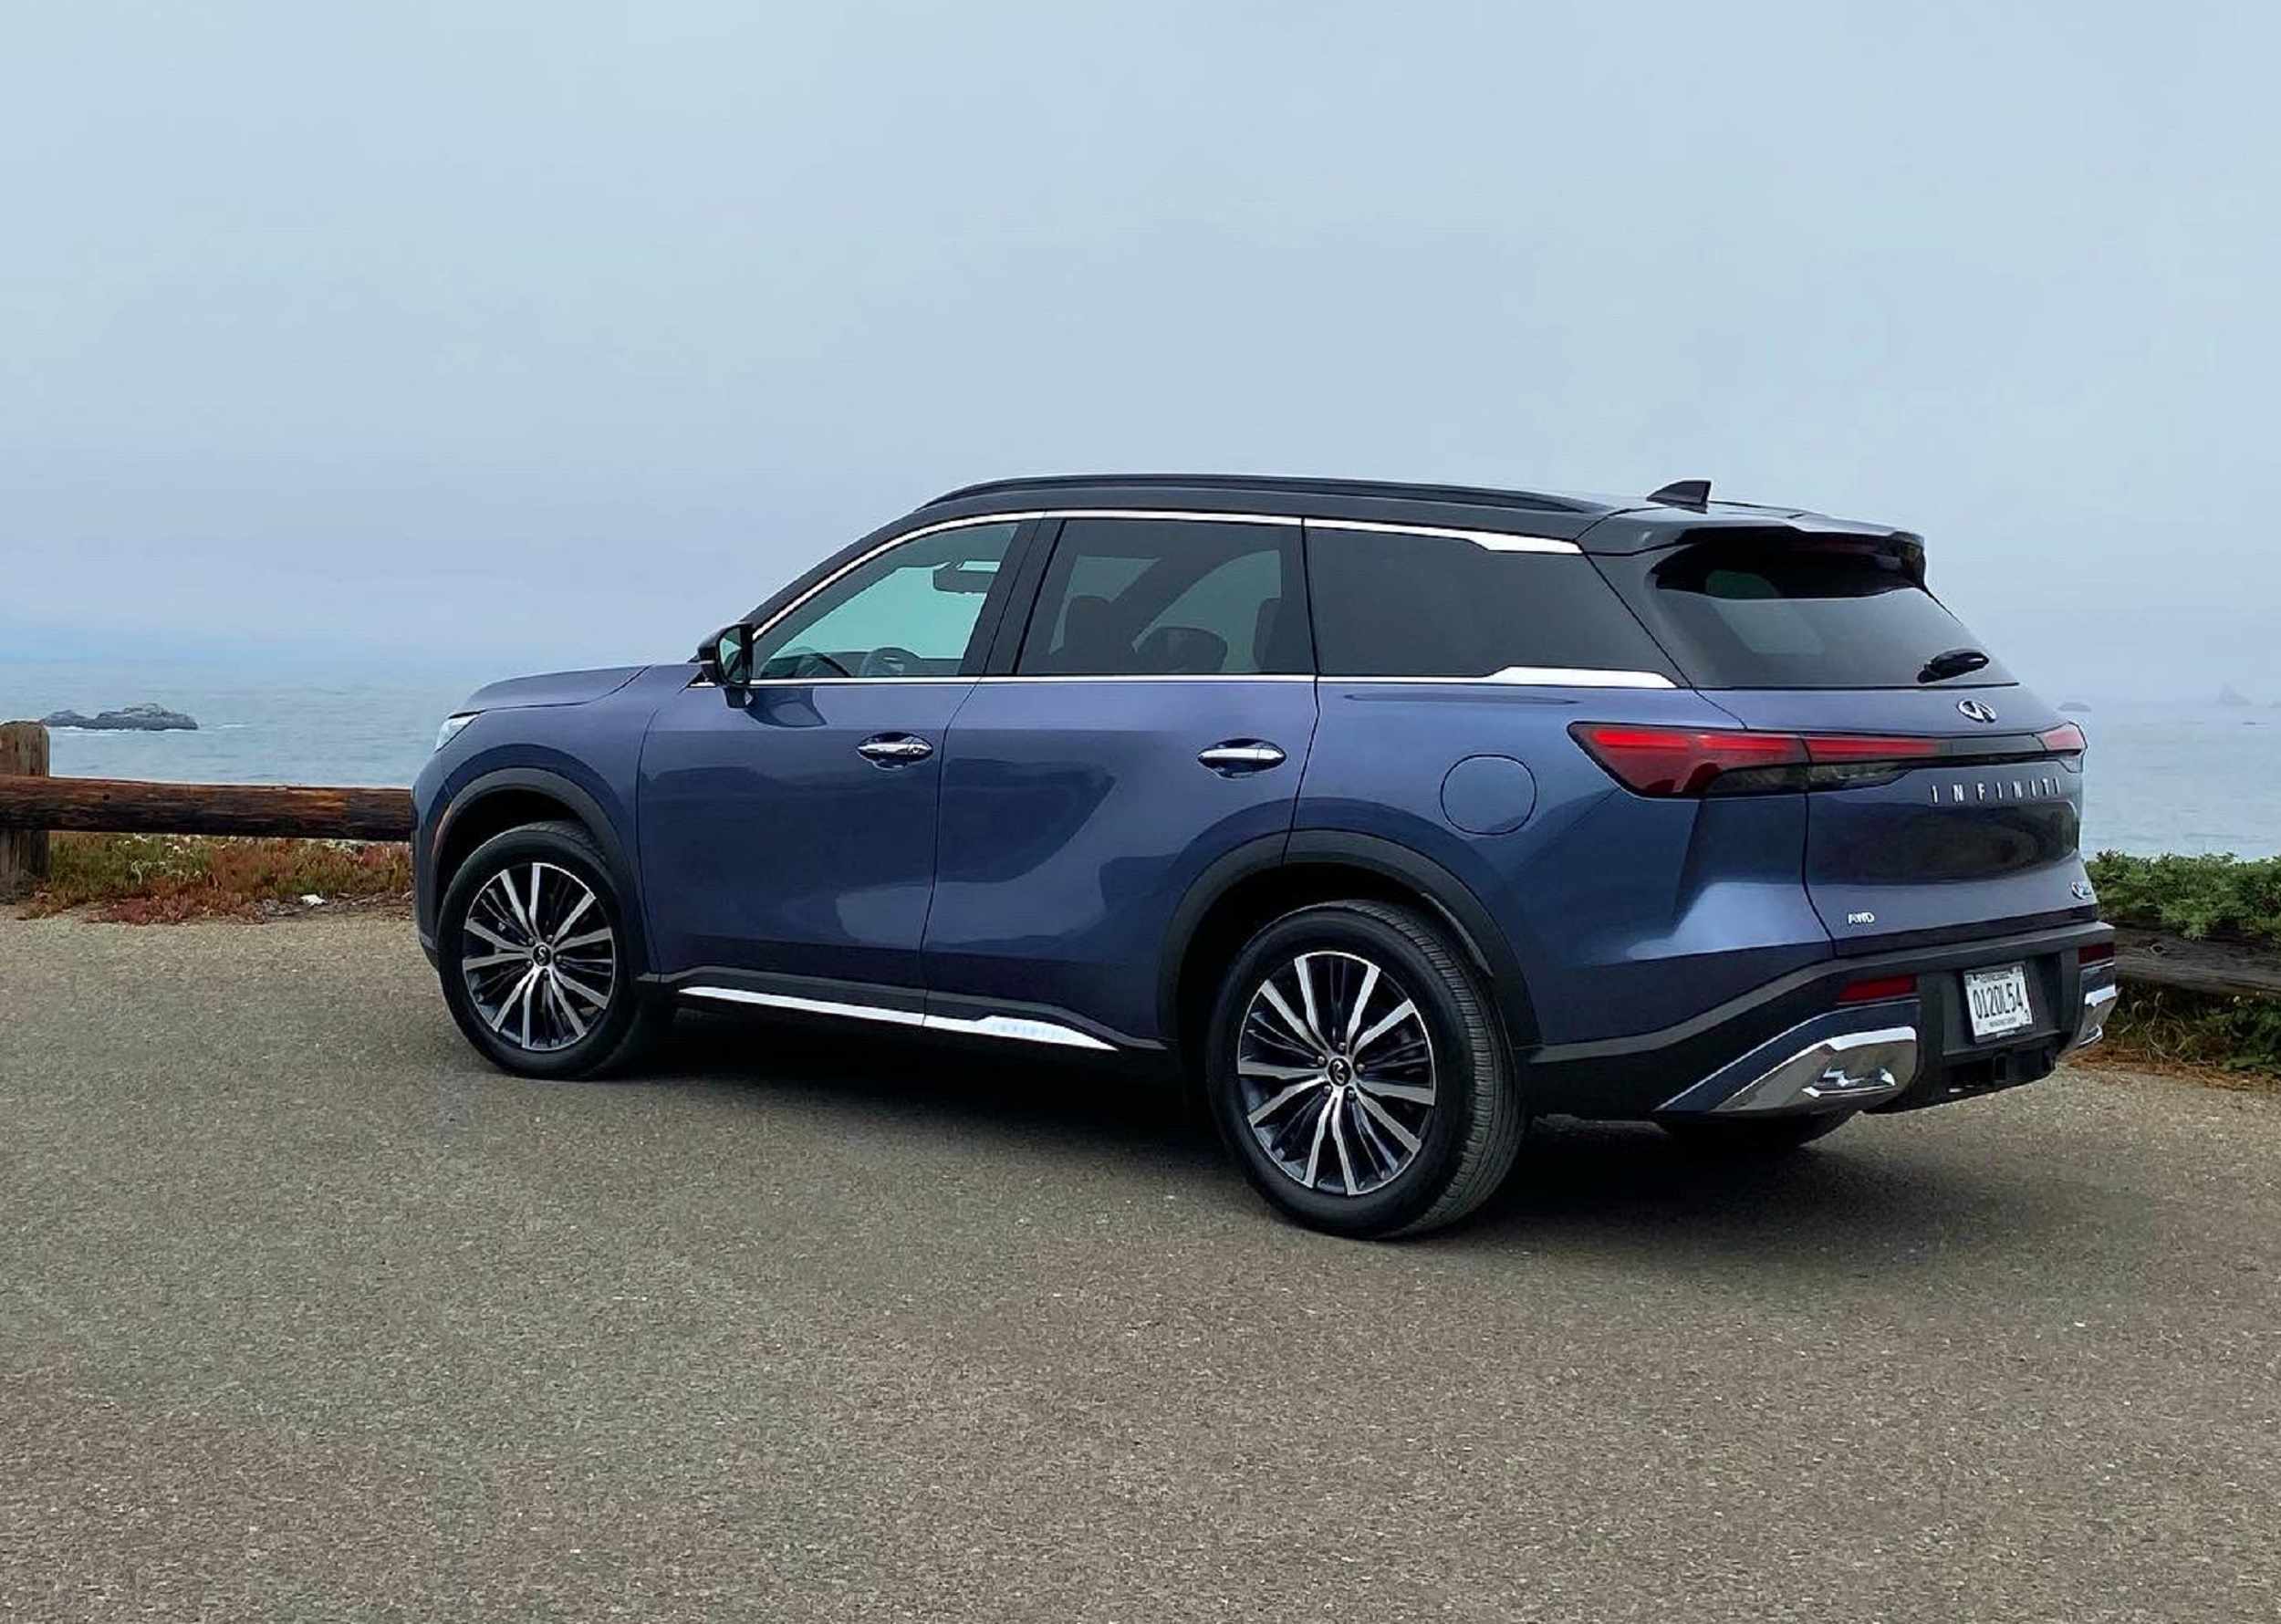 2022 Infiniti QX60: Family Friendly and Better Than Ever